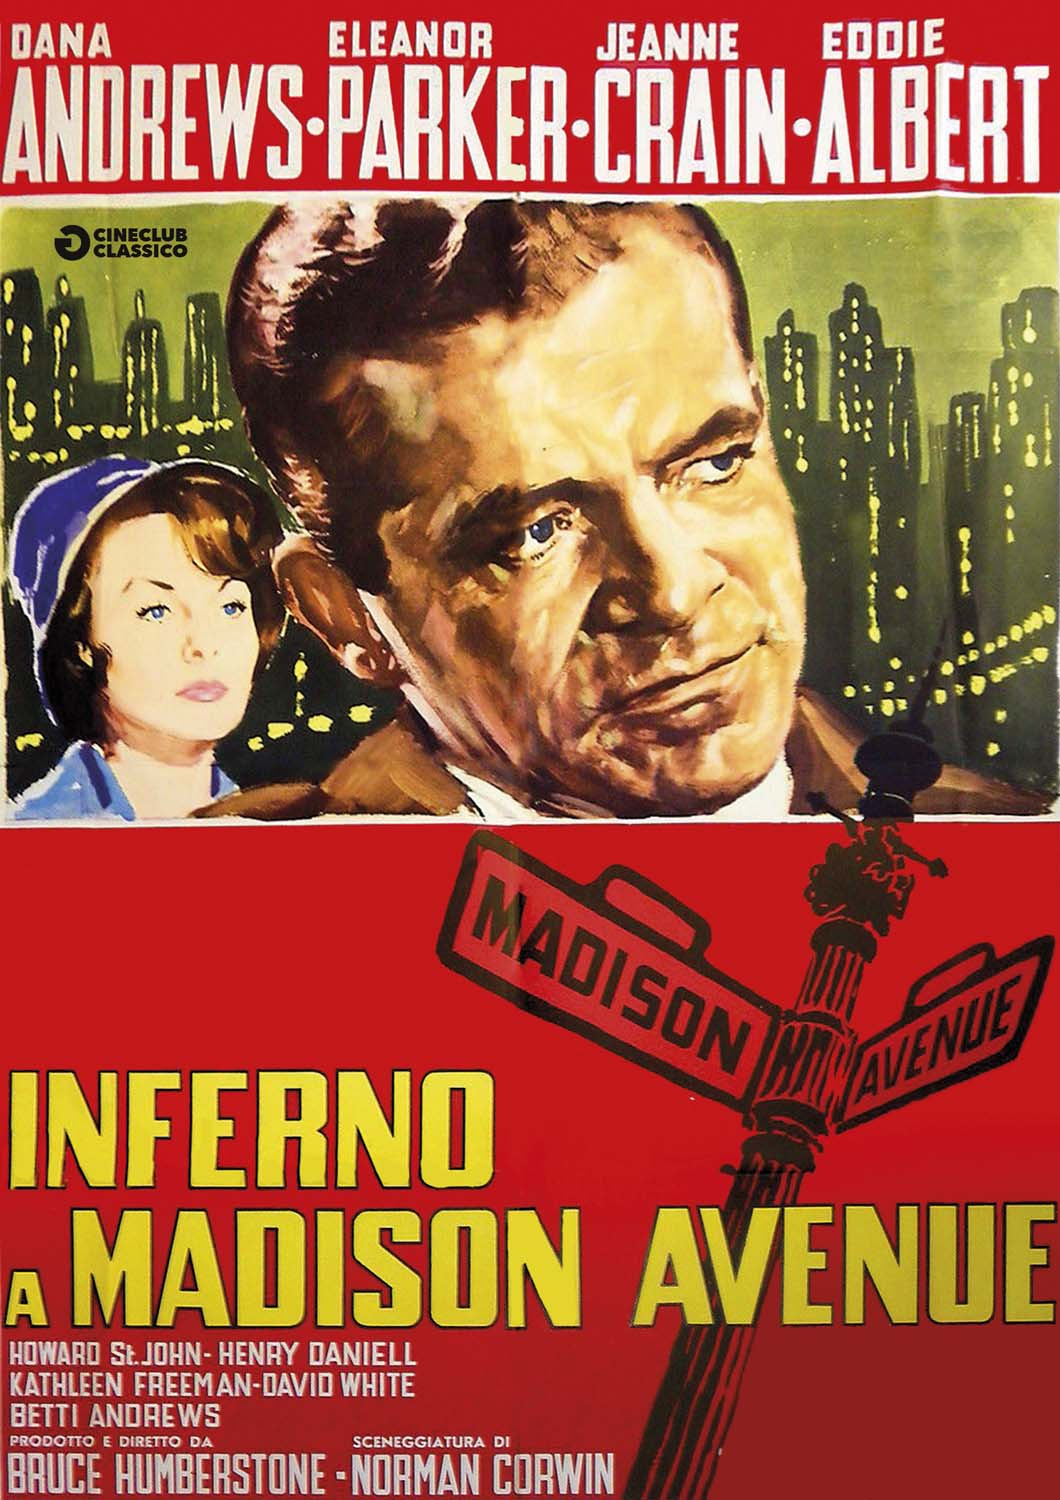 INFERNO A MADISON AVENUE (DVD)